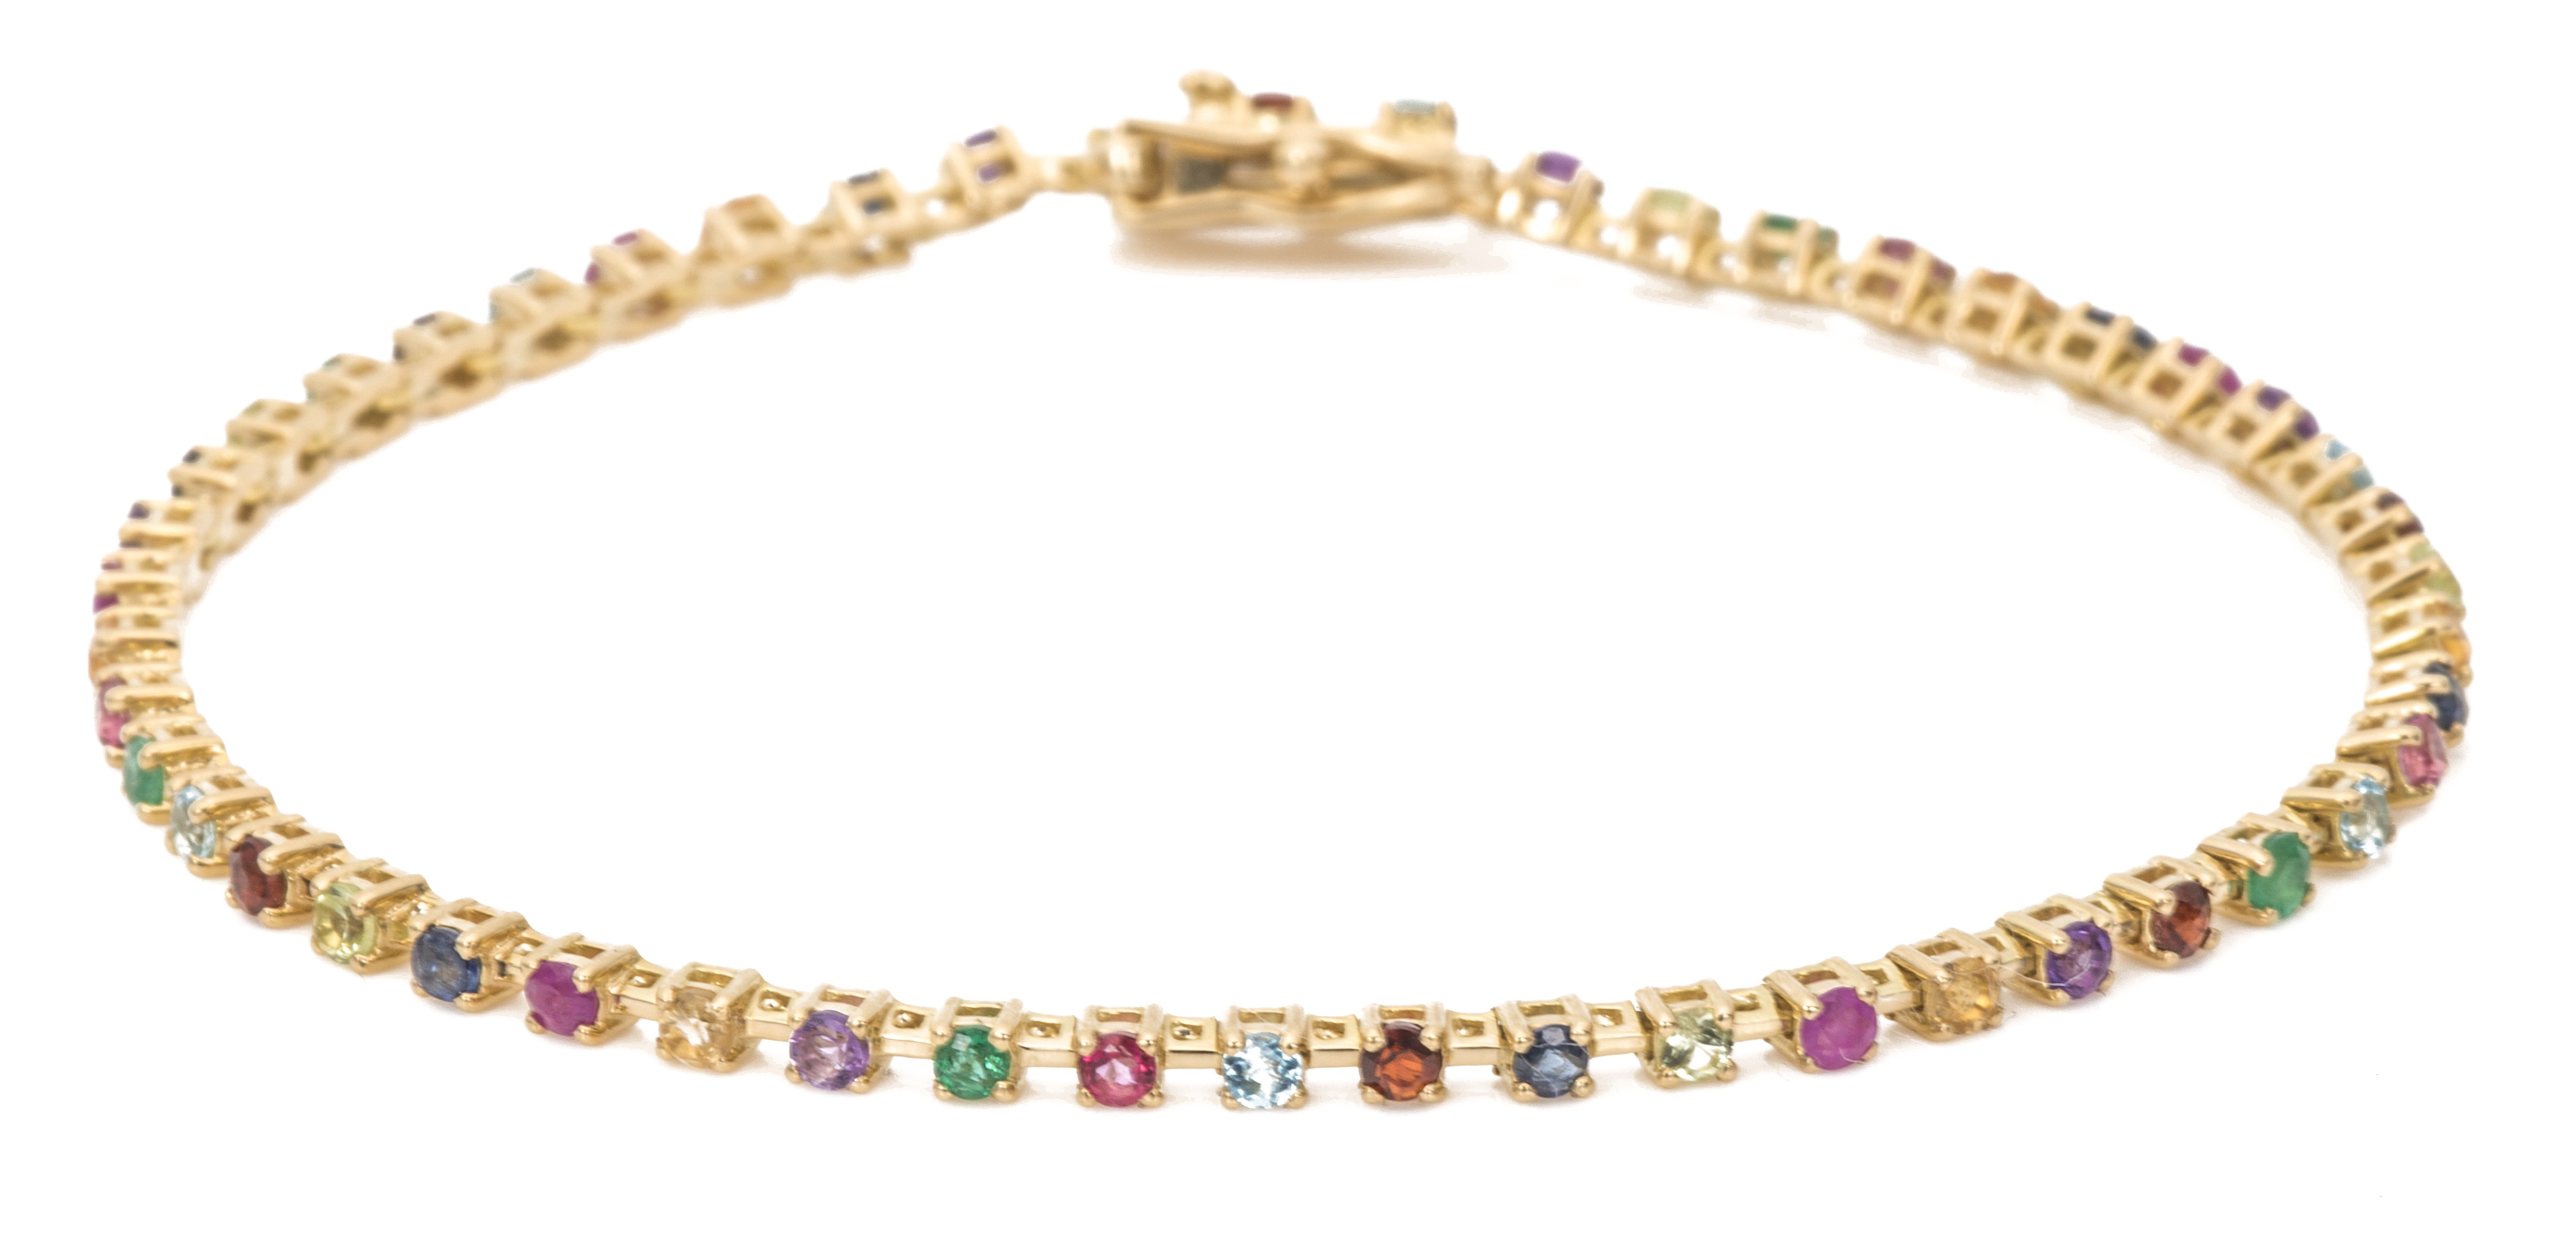 Ariel Gordon Candy Crush tennis bracelet | JCK On Your Market